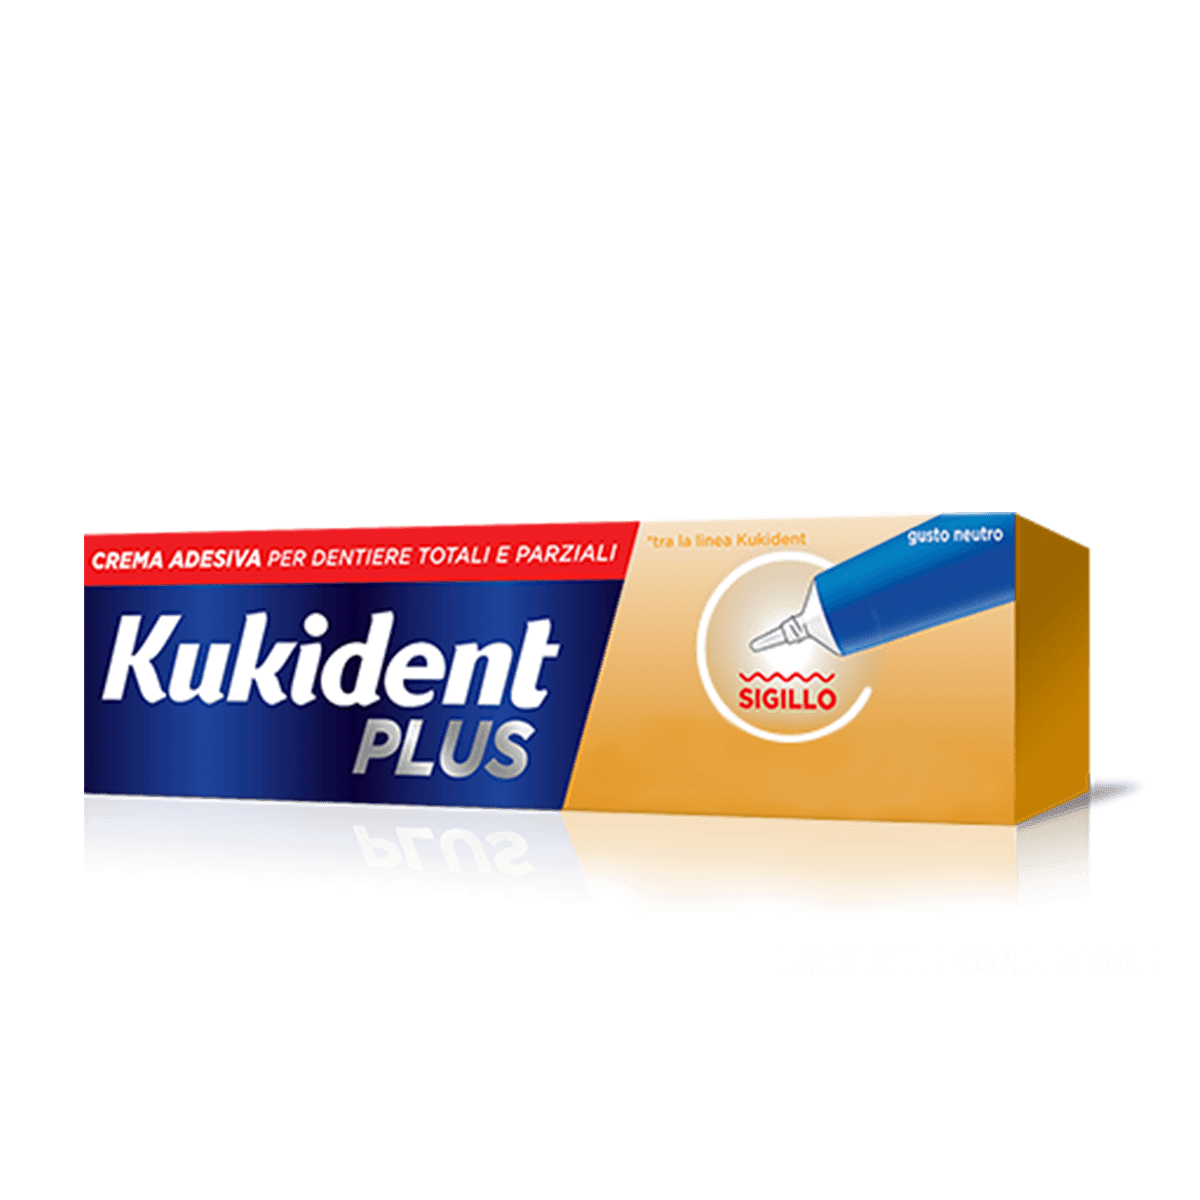 Kukident Plus Sigillo